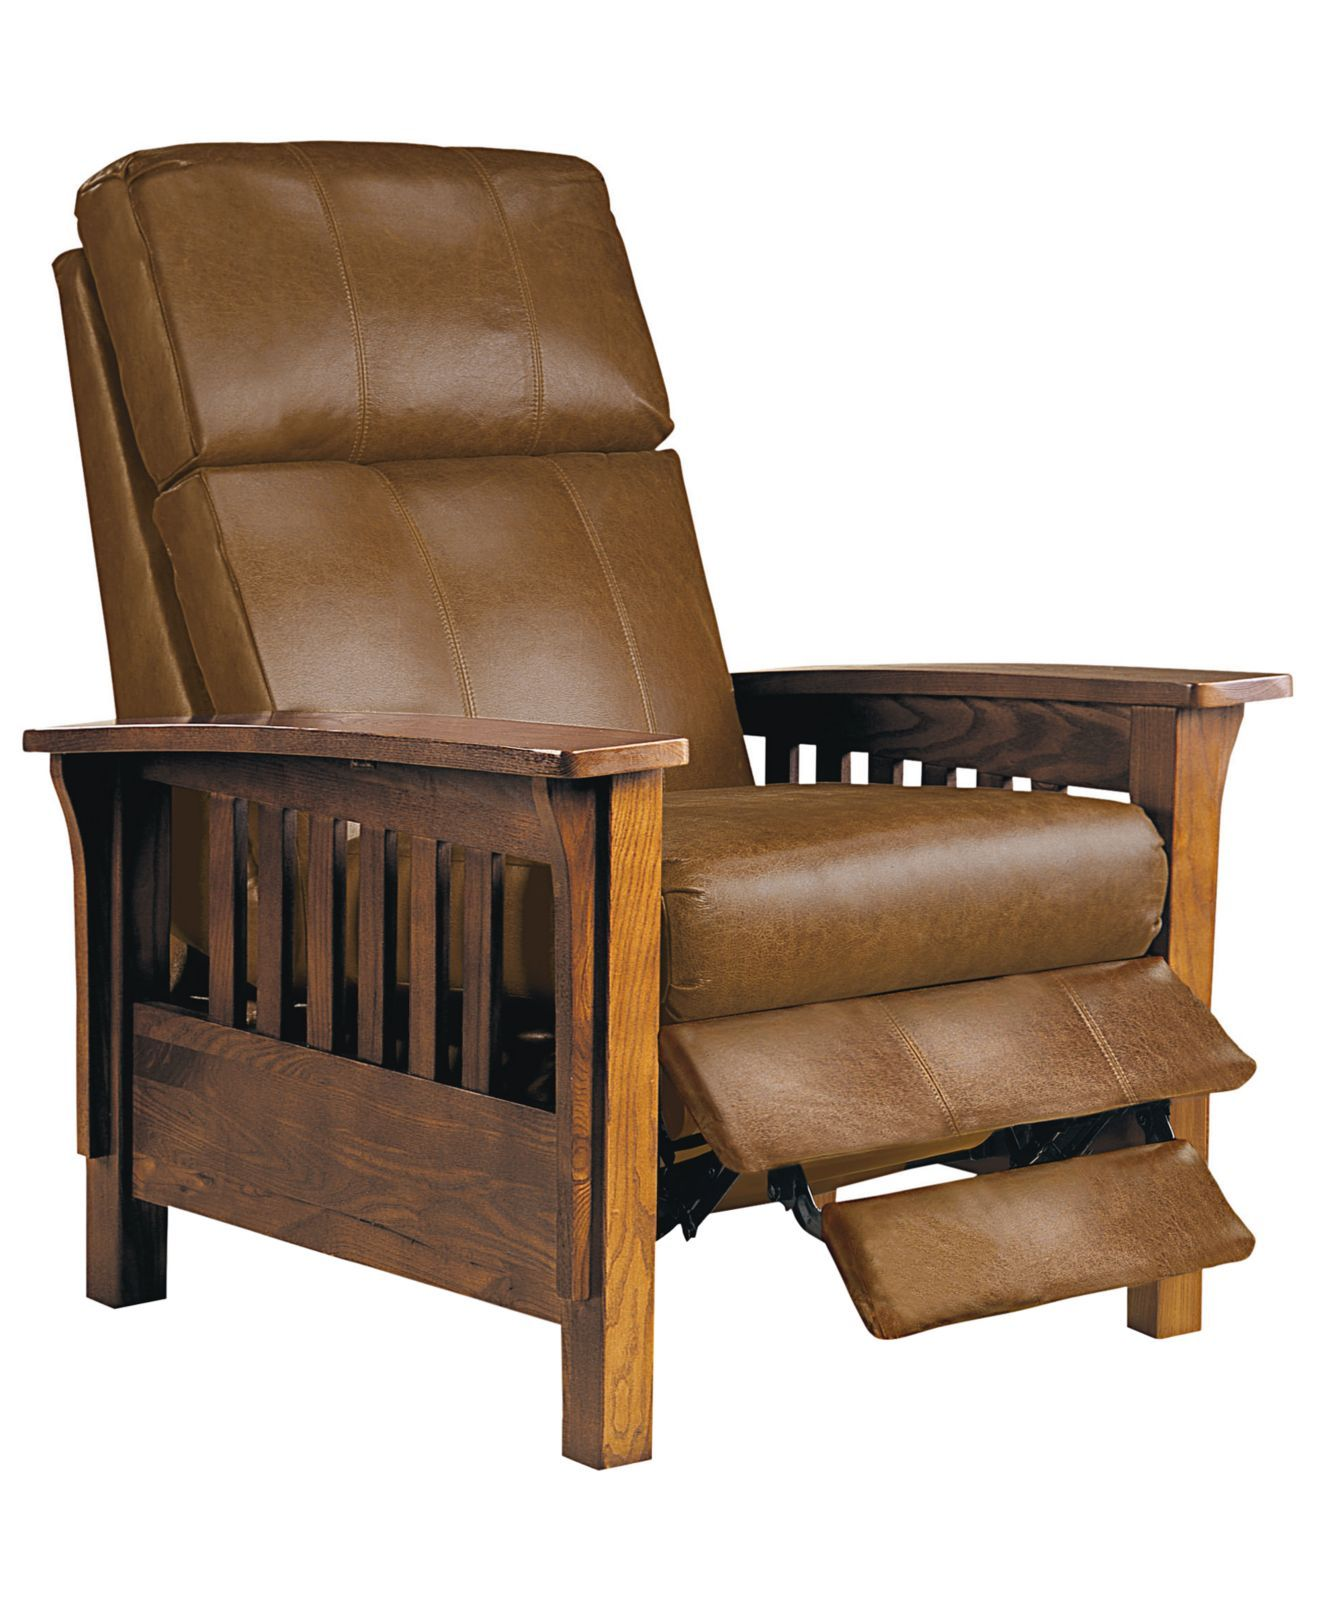 Marvelous Nicolas Ii Mission Style Leather Recliner Chair 33W X 40D Unemploymentrelief Wooden Chair Designs For Living Room Unemploymentrelieforg